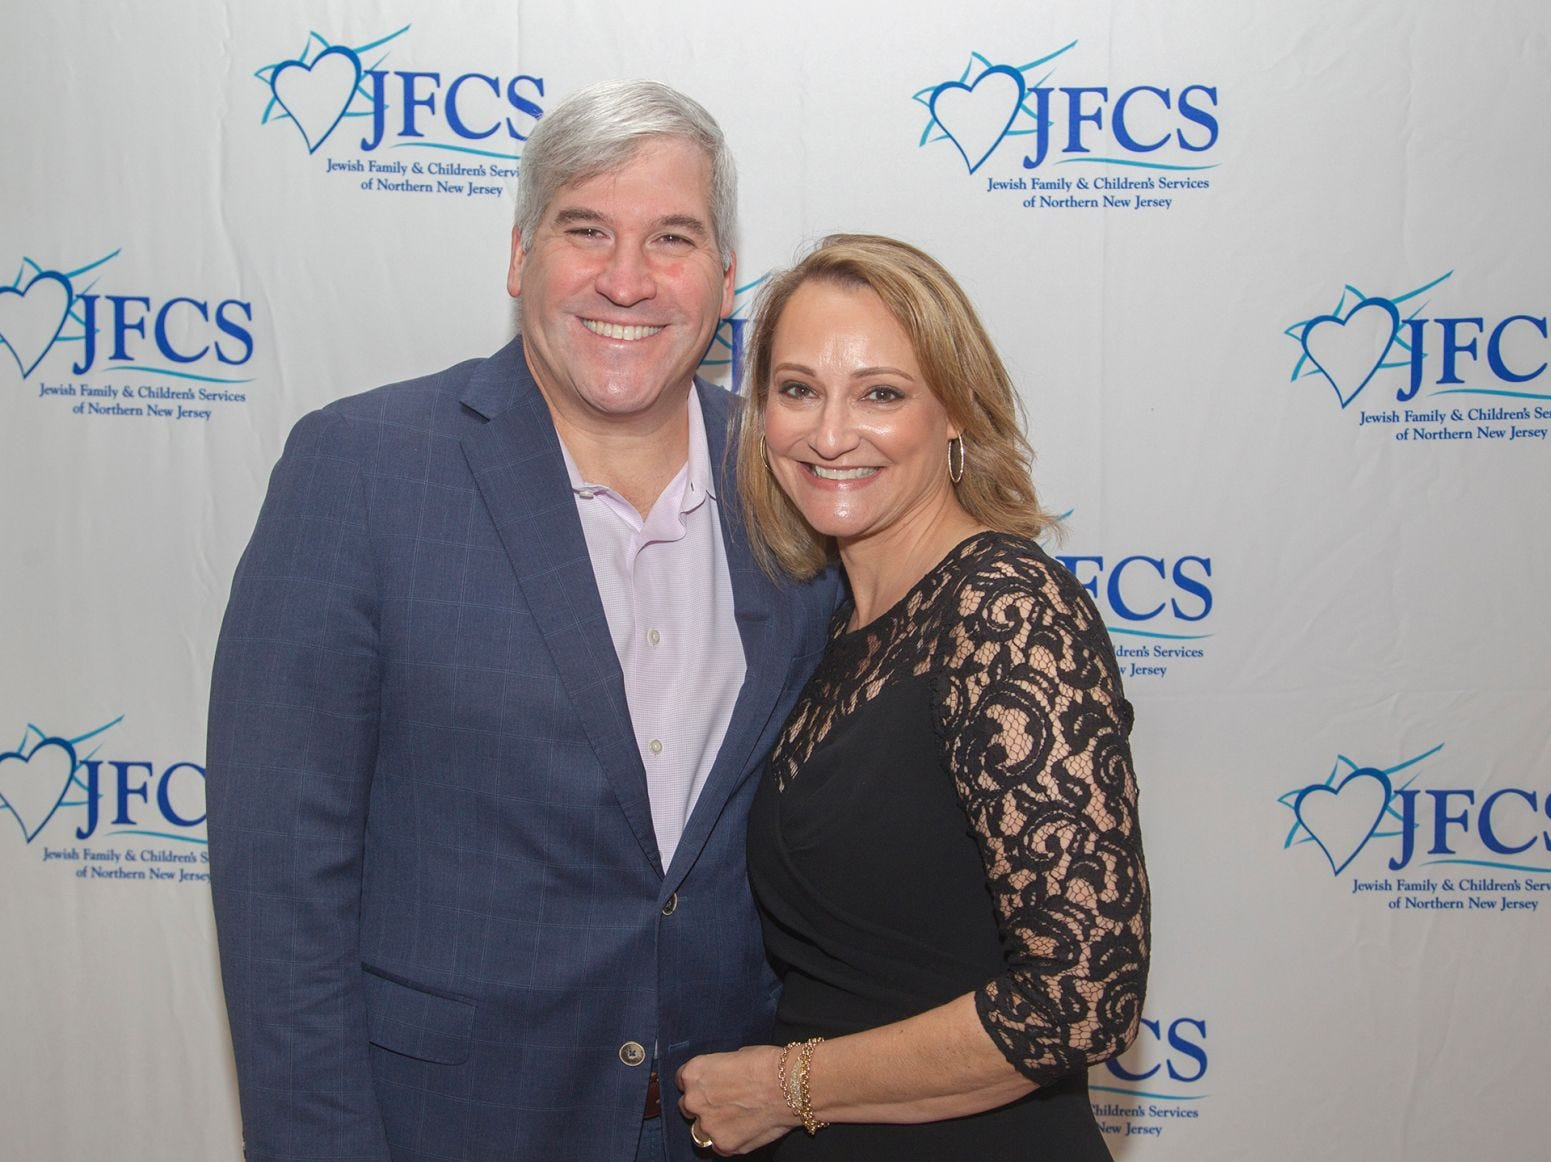 Debbie and Mickey Harris. Jewish Family & Children's Services of Northern New Jersey held its annual gala at the Edgewood Country Club in River Vale. The evening honored Shira Feuerstein, Jayne Petak, and Alan Scharfstein for their leadership, support, and dedication. 11/18/2018